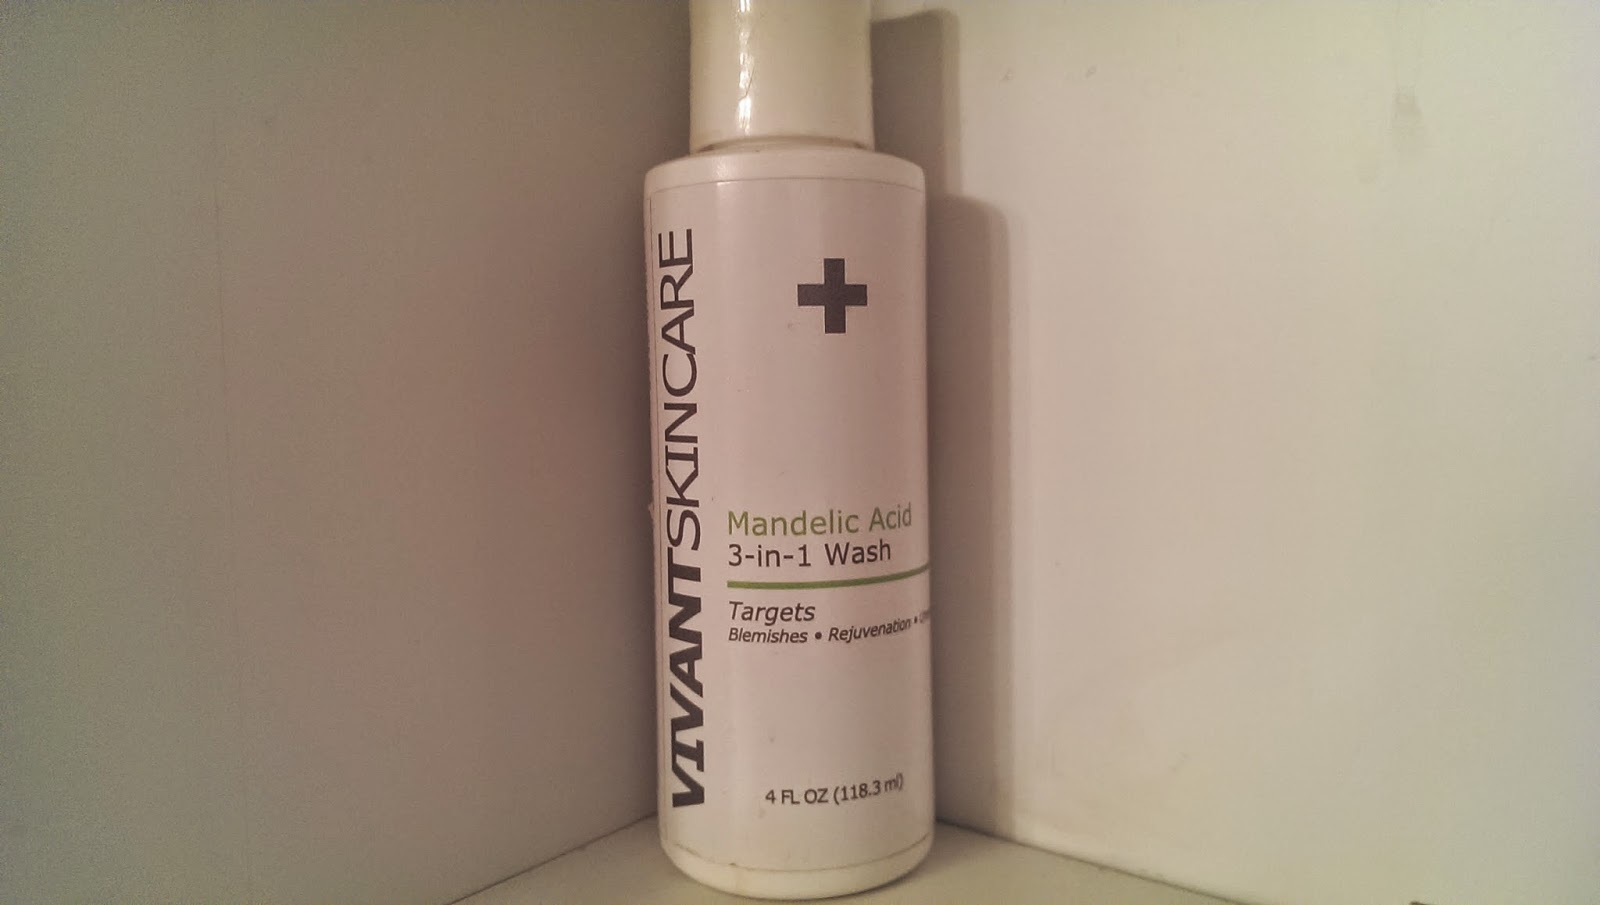 pixel Vivant Skin Care Review - Mandelic Acid 3-in-1 Wash 8oz  #Vivantskincare